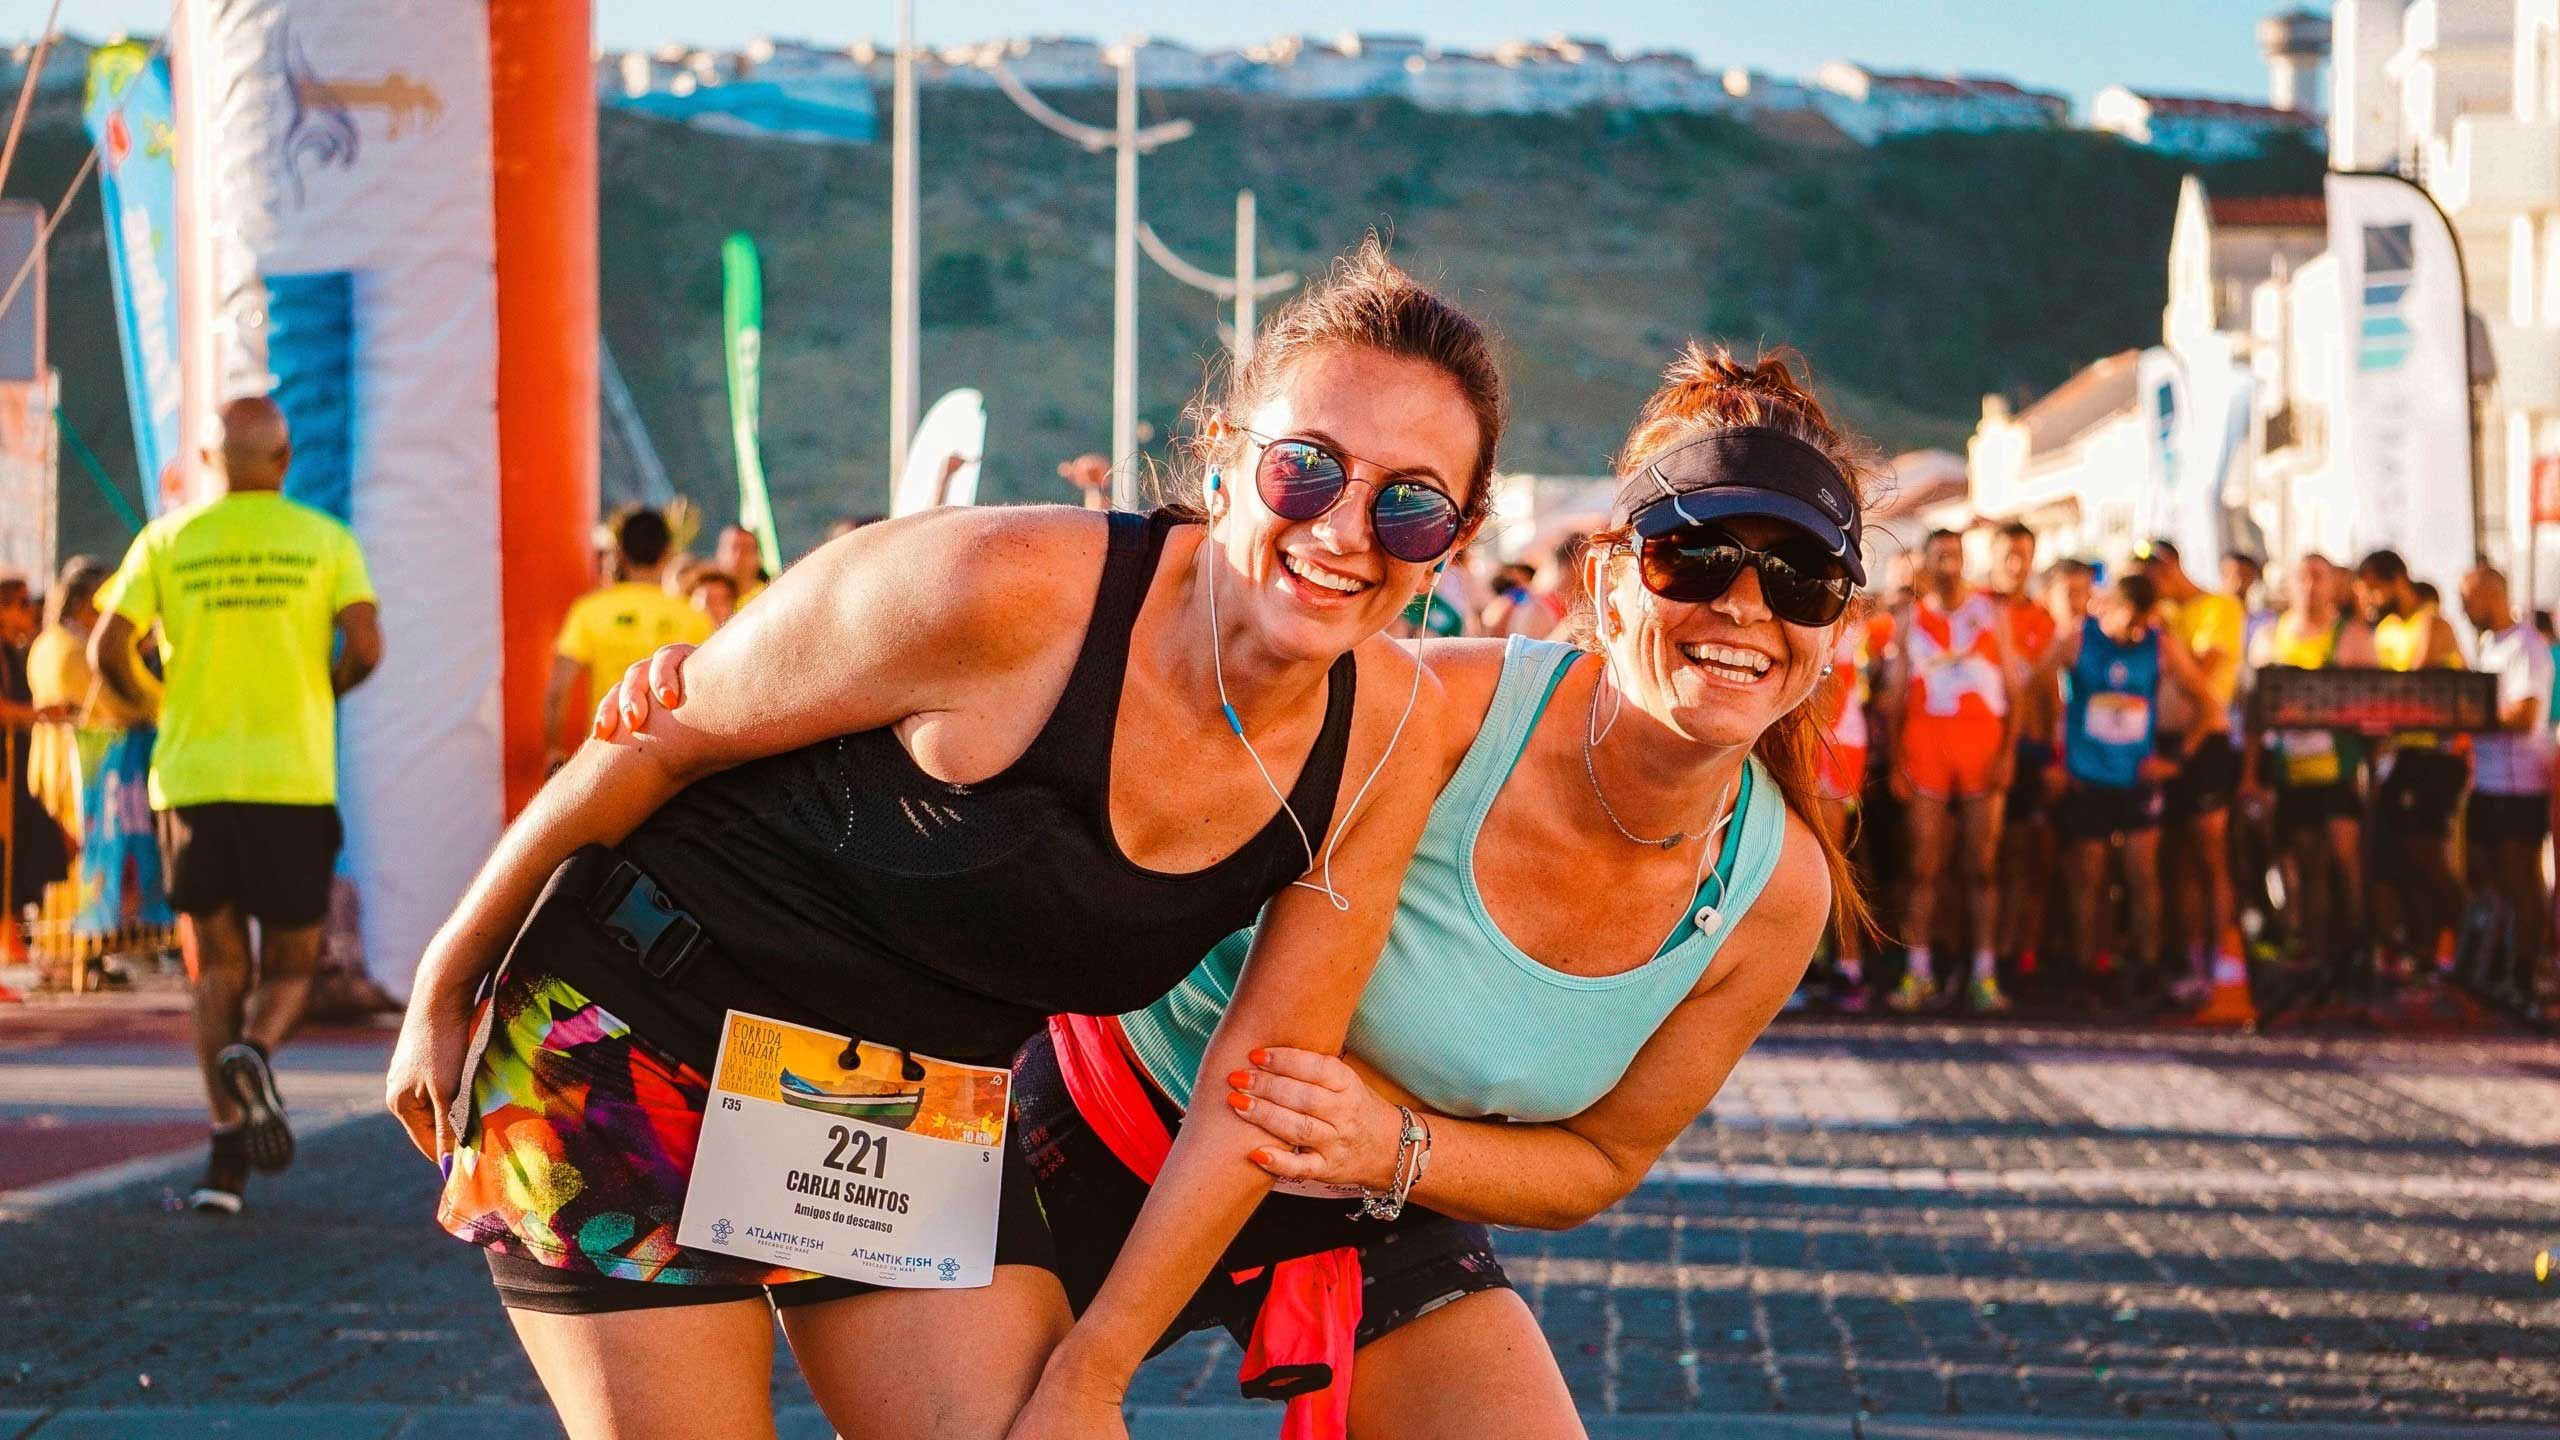 Two women at the finish line of a race